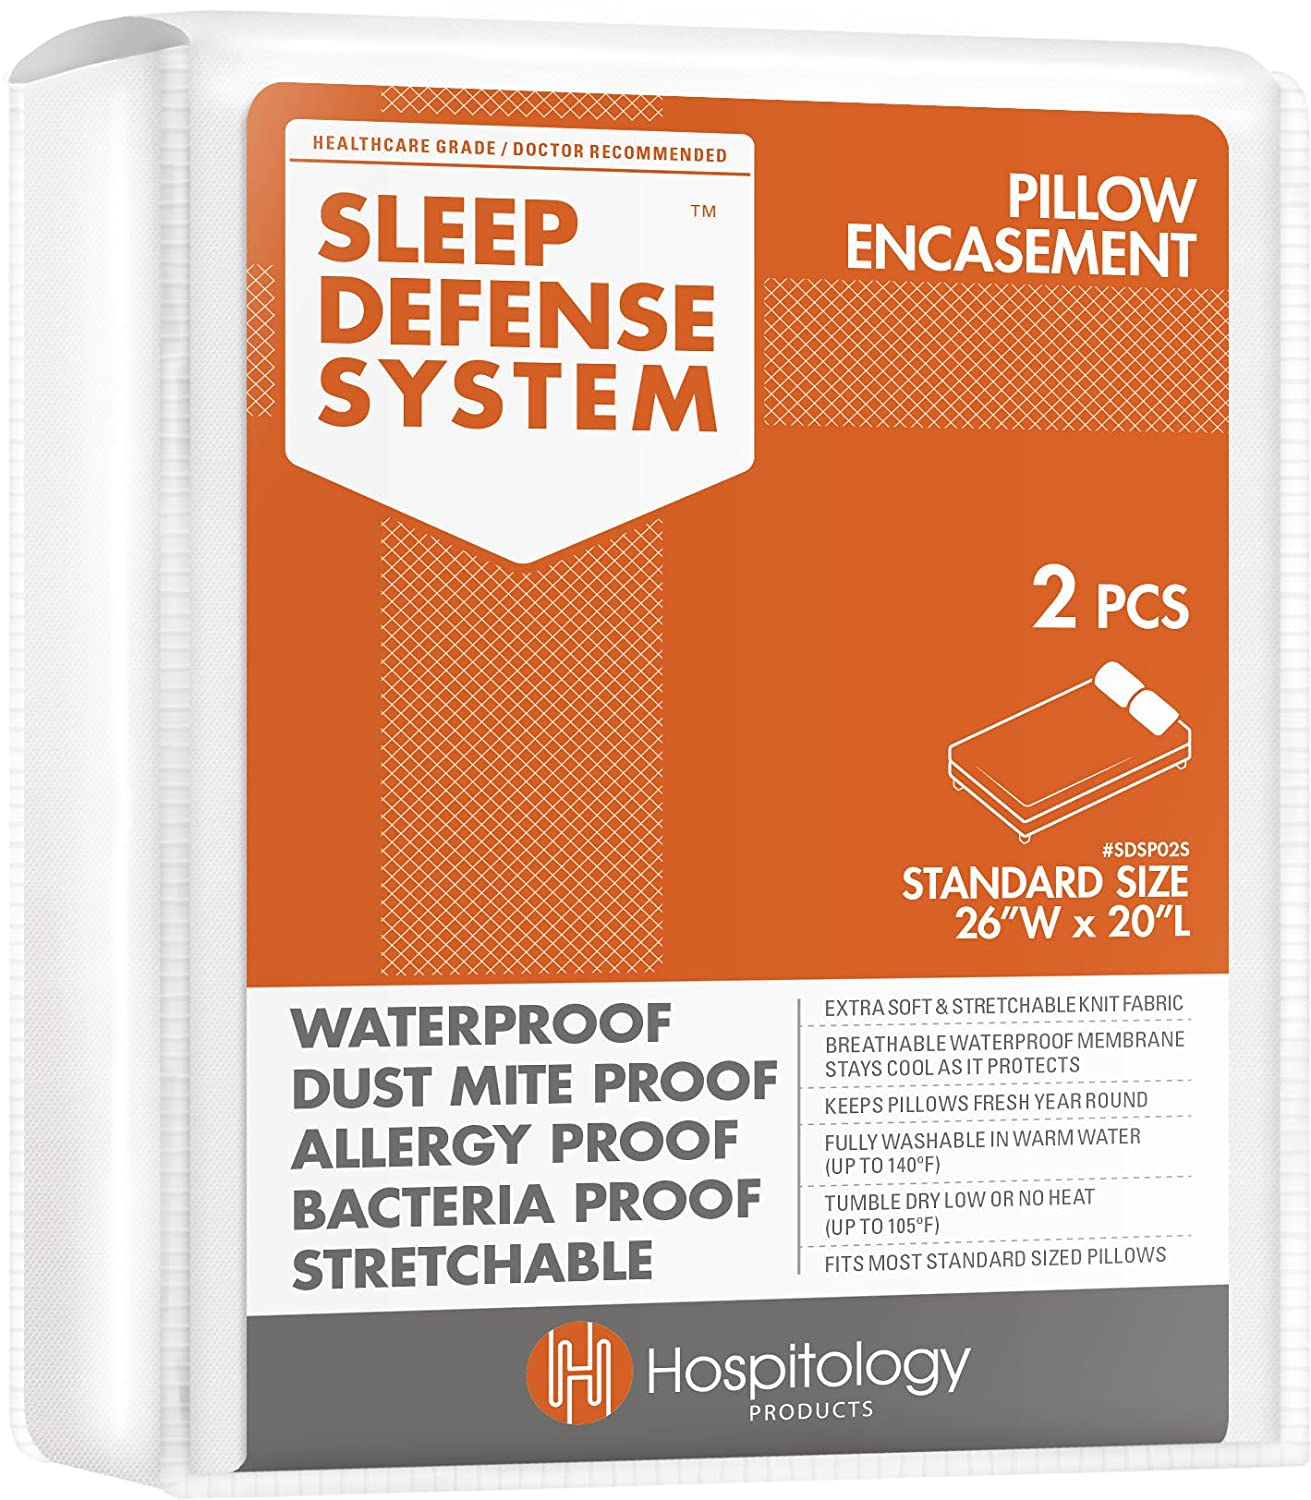 Hospitology Sleep Defense System Bed Bug and Waterproof Pillow Encasement Cover, SET OF 2 SDSP02S